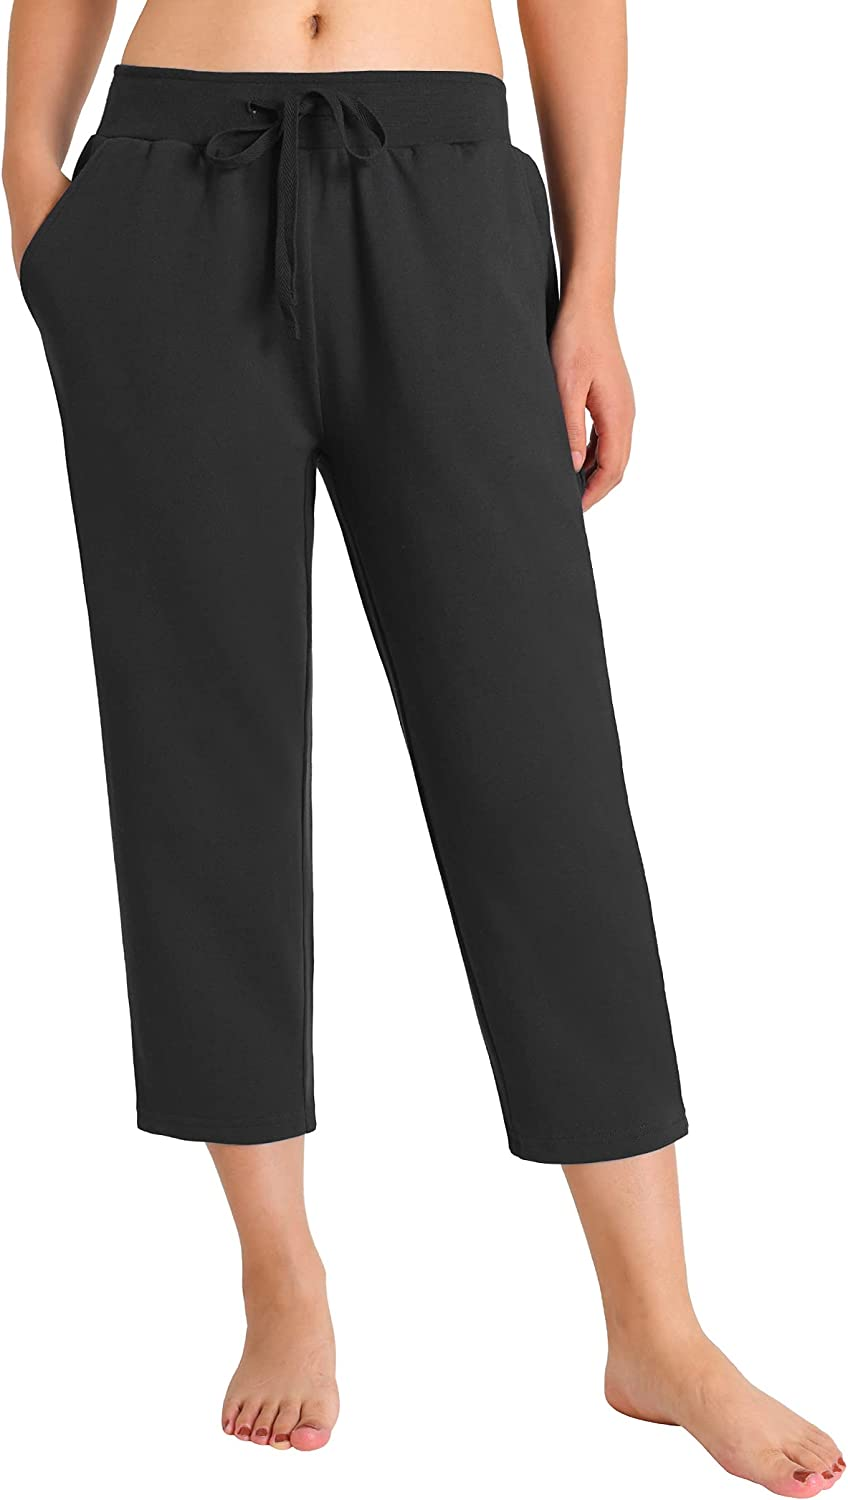 Weintee Women's French Terry Capris with Pockets